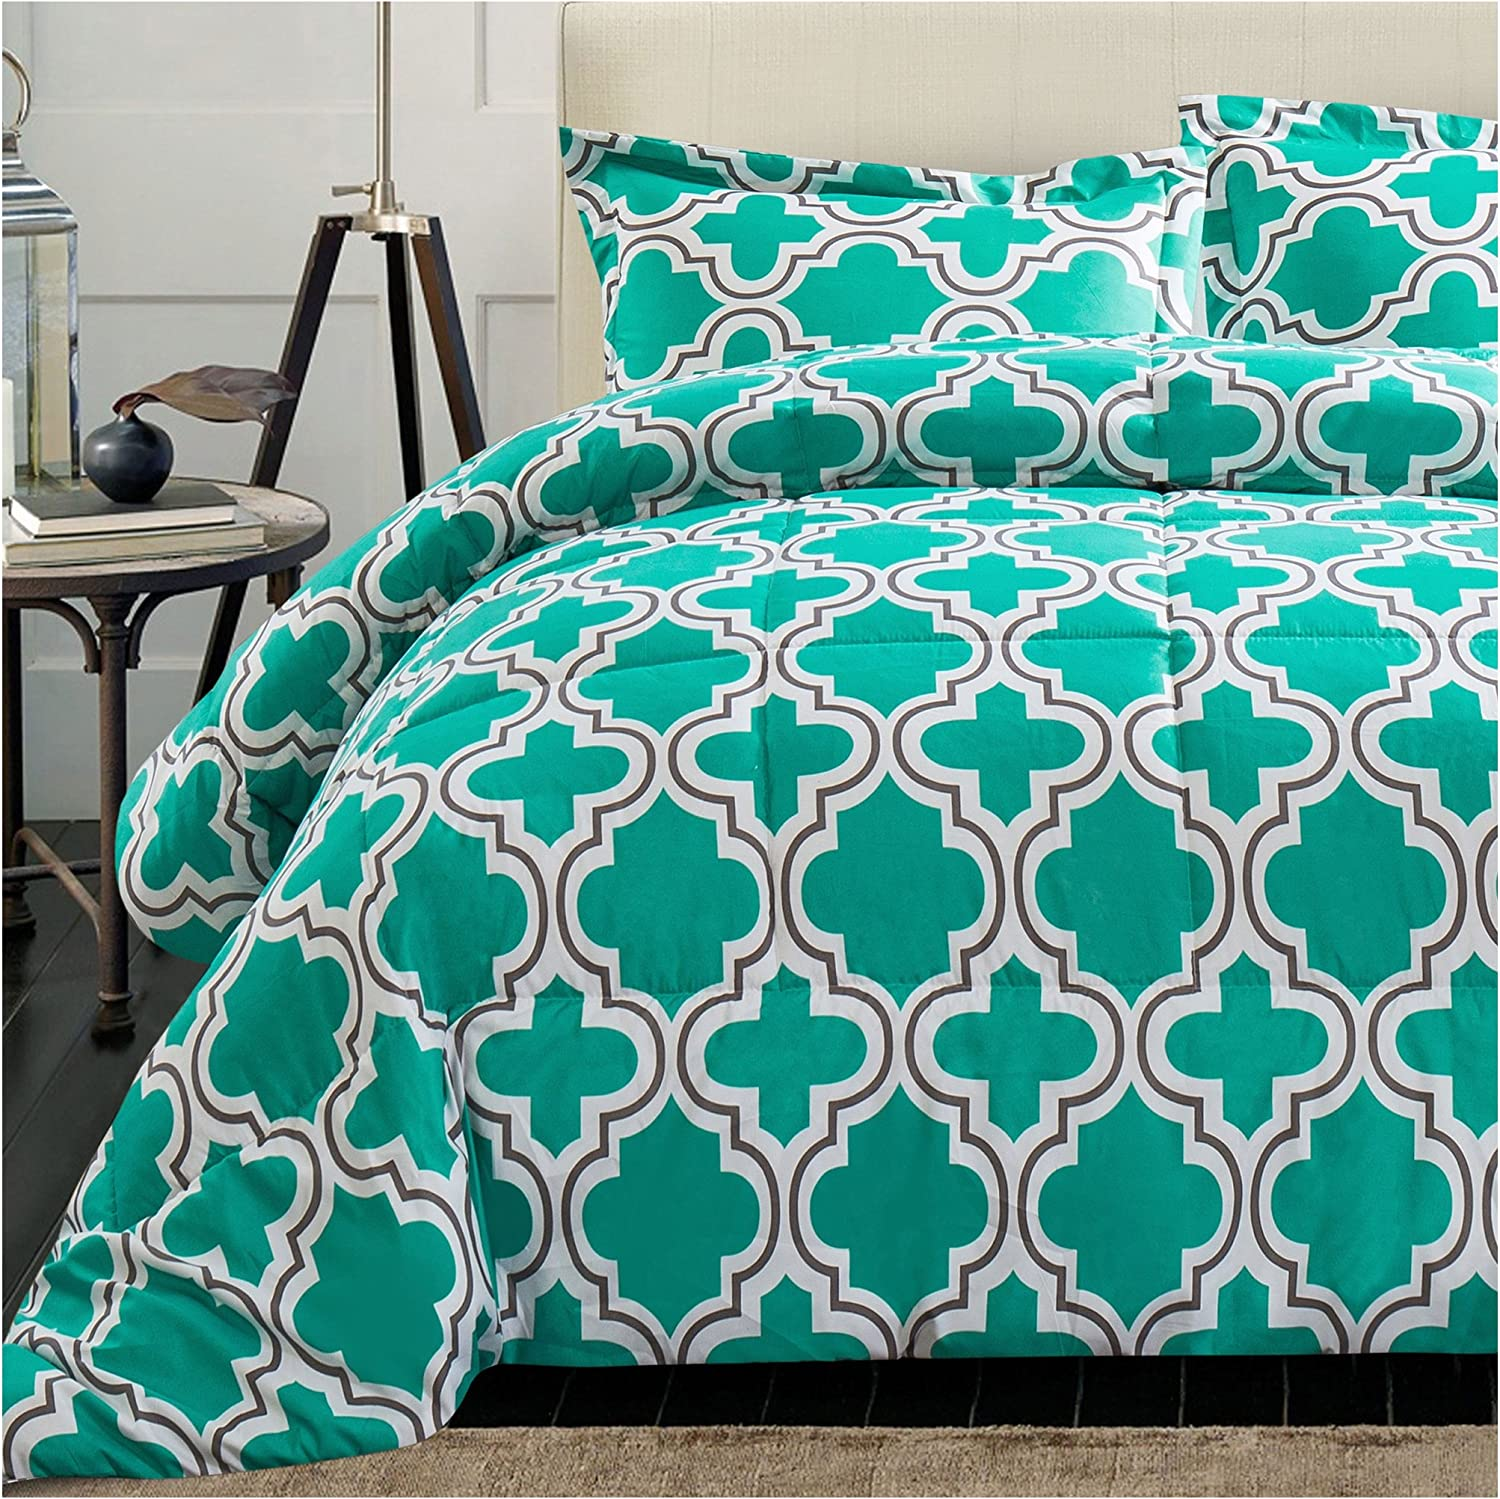 Superior Trellis Comforter Set with Pillow Shams, Luxurious & Soft Microfiber with Down Alternative Fill, Contemporary Geometric Trellis Design - King/California King Bedding Set, Teal